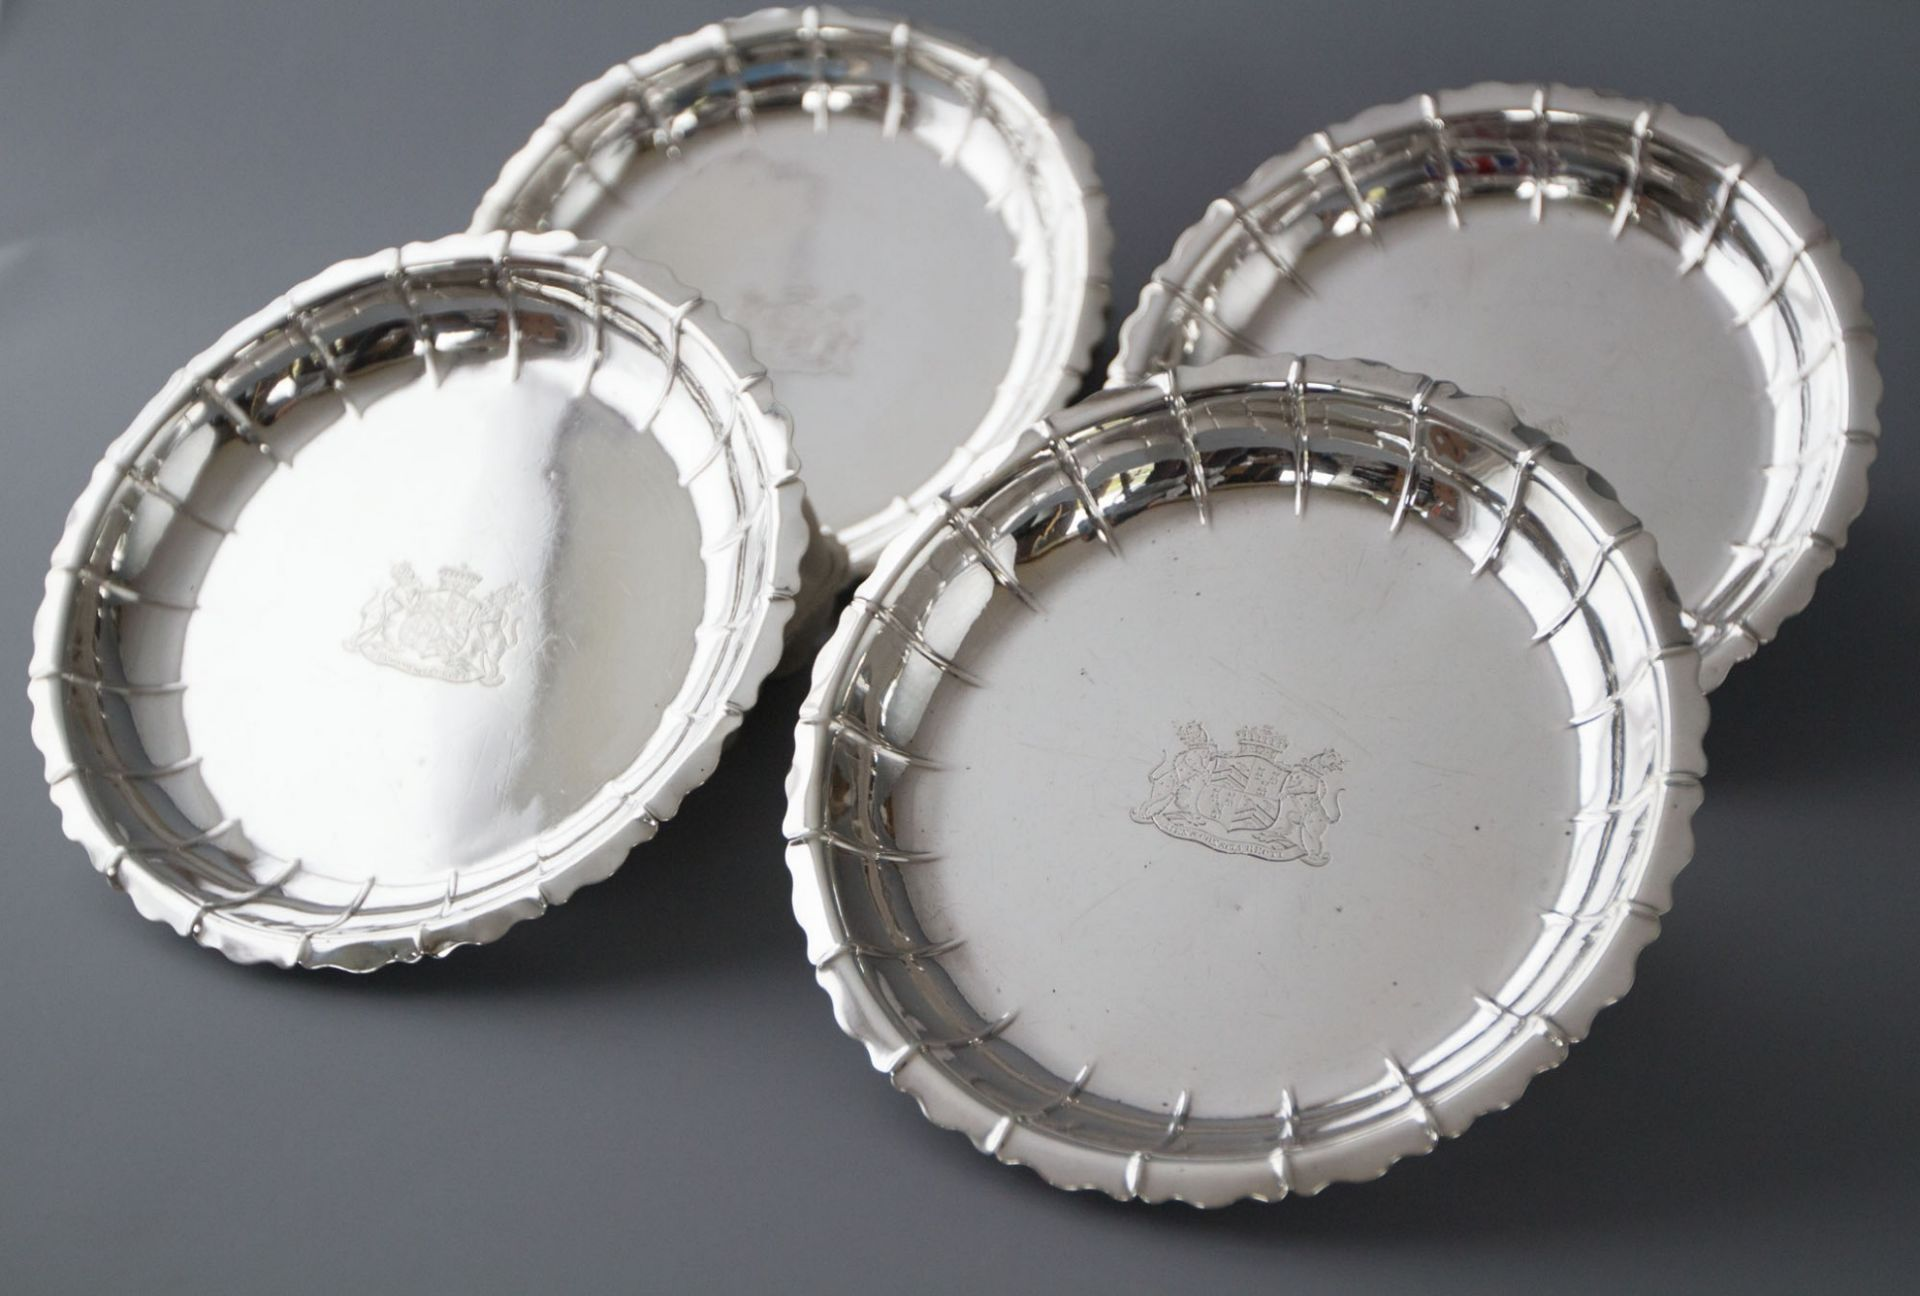 A Set of 4 Silver Strawberry Dishes, London 1835 by Robert Garrard